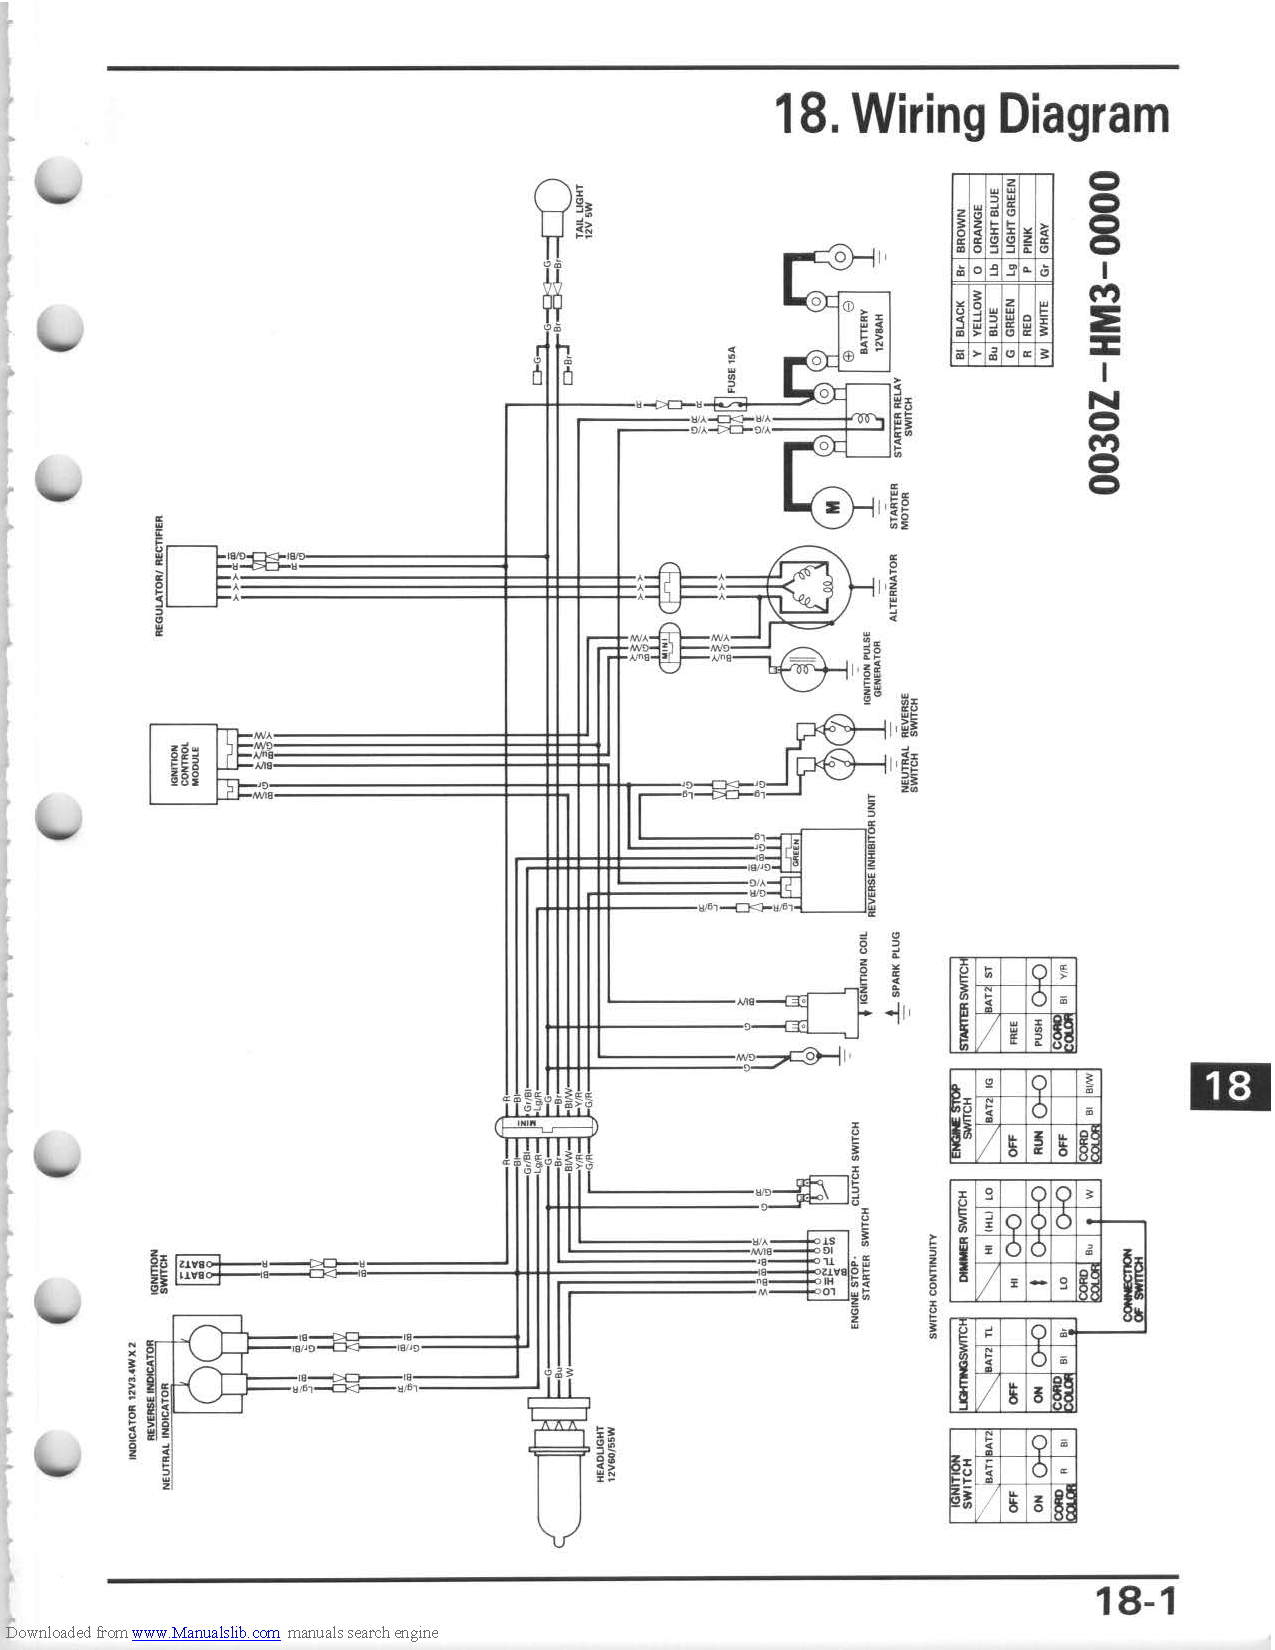 2001 Honda 400Ex Wiring Diagram from www.trxforums.com